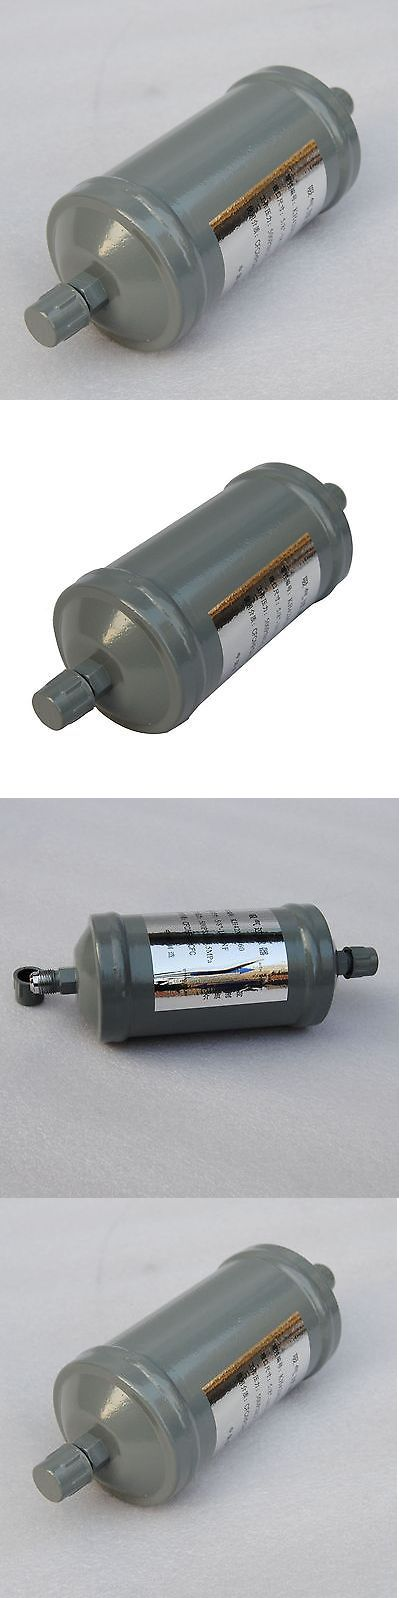 Electronics Parts: Replacement Carrier The Centrifuge Return Oil Filter Kh42me060 BUY IT NOW ONLY: $40.0